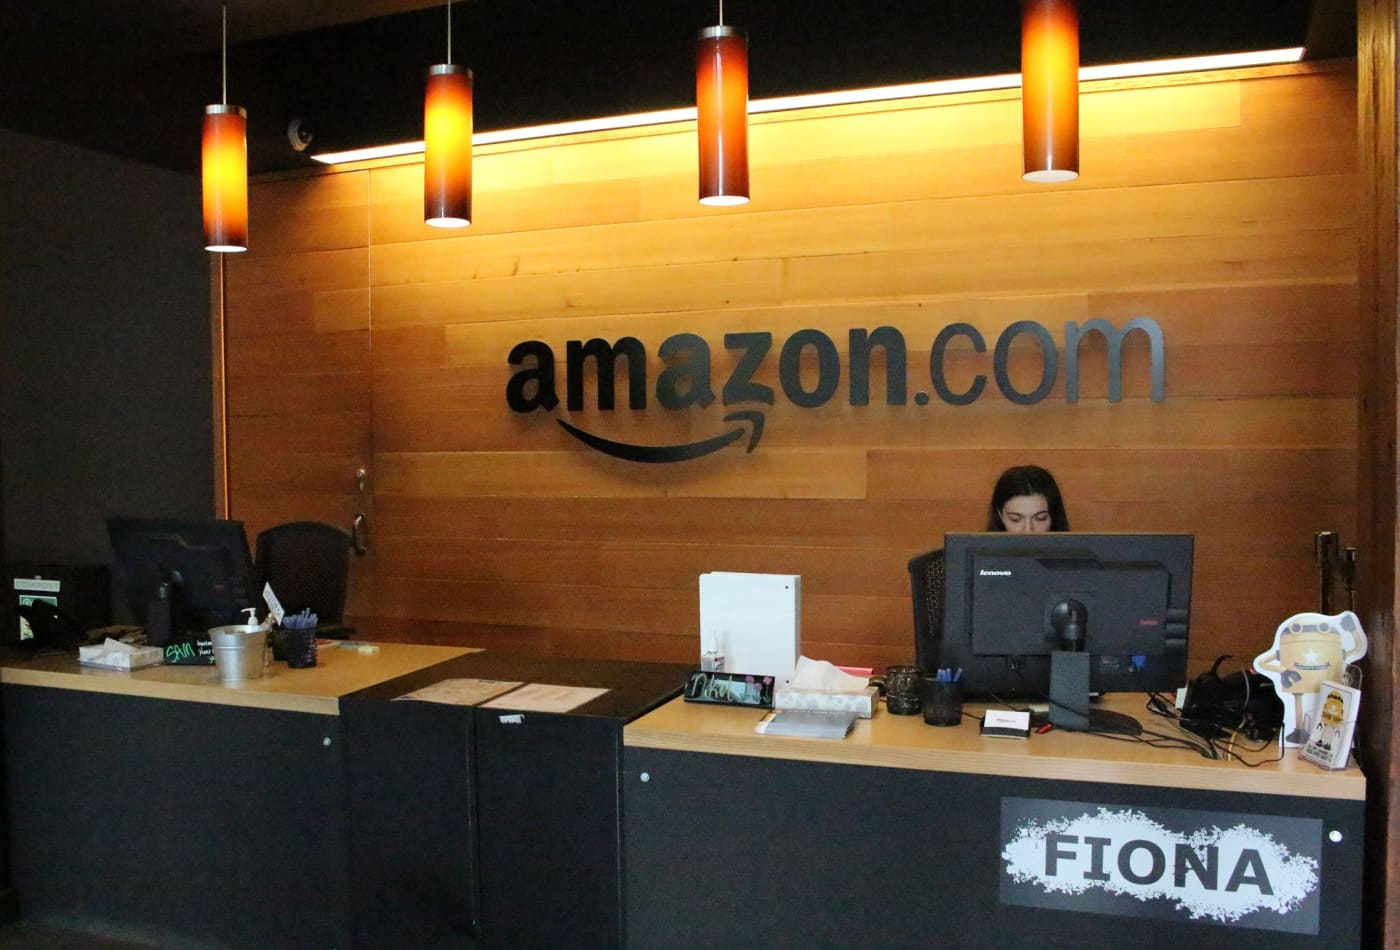 Amazon crosses 1,000 hires at its new Nashville office